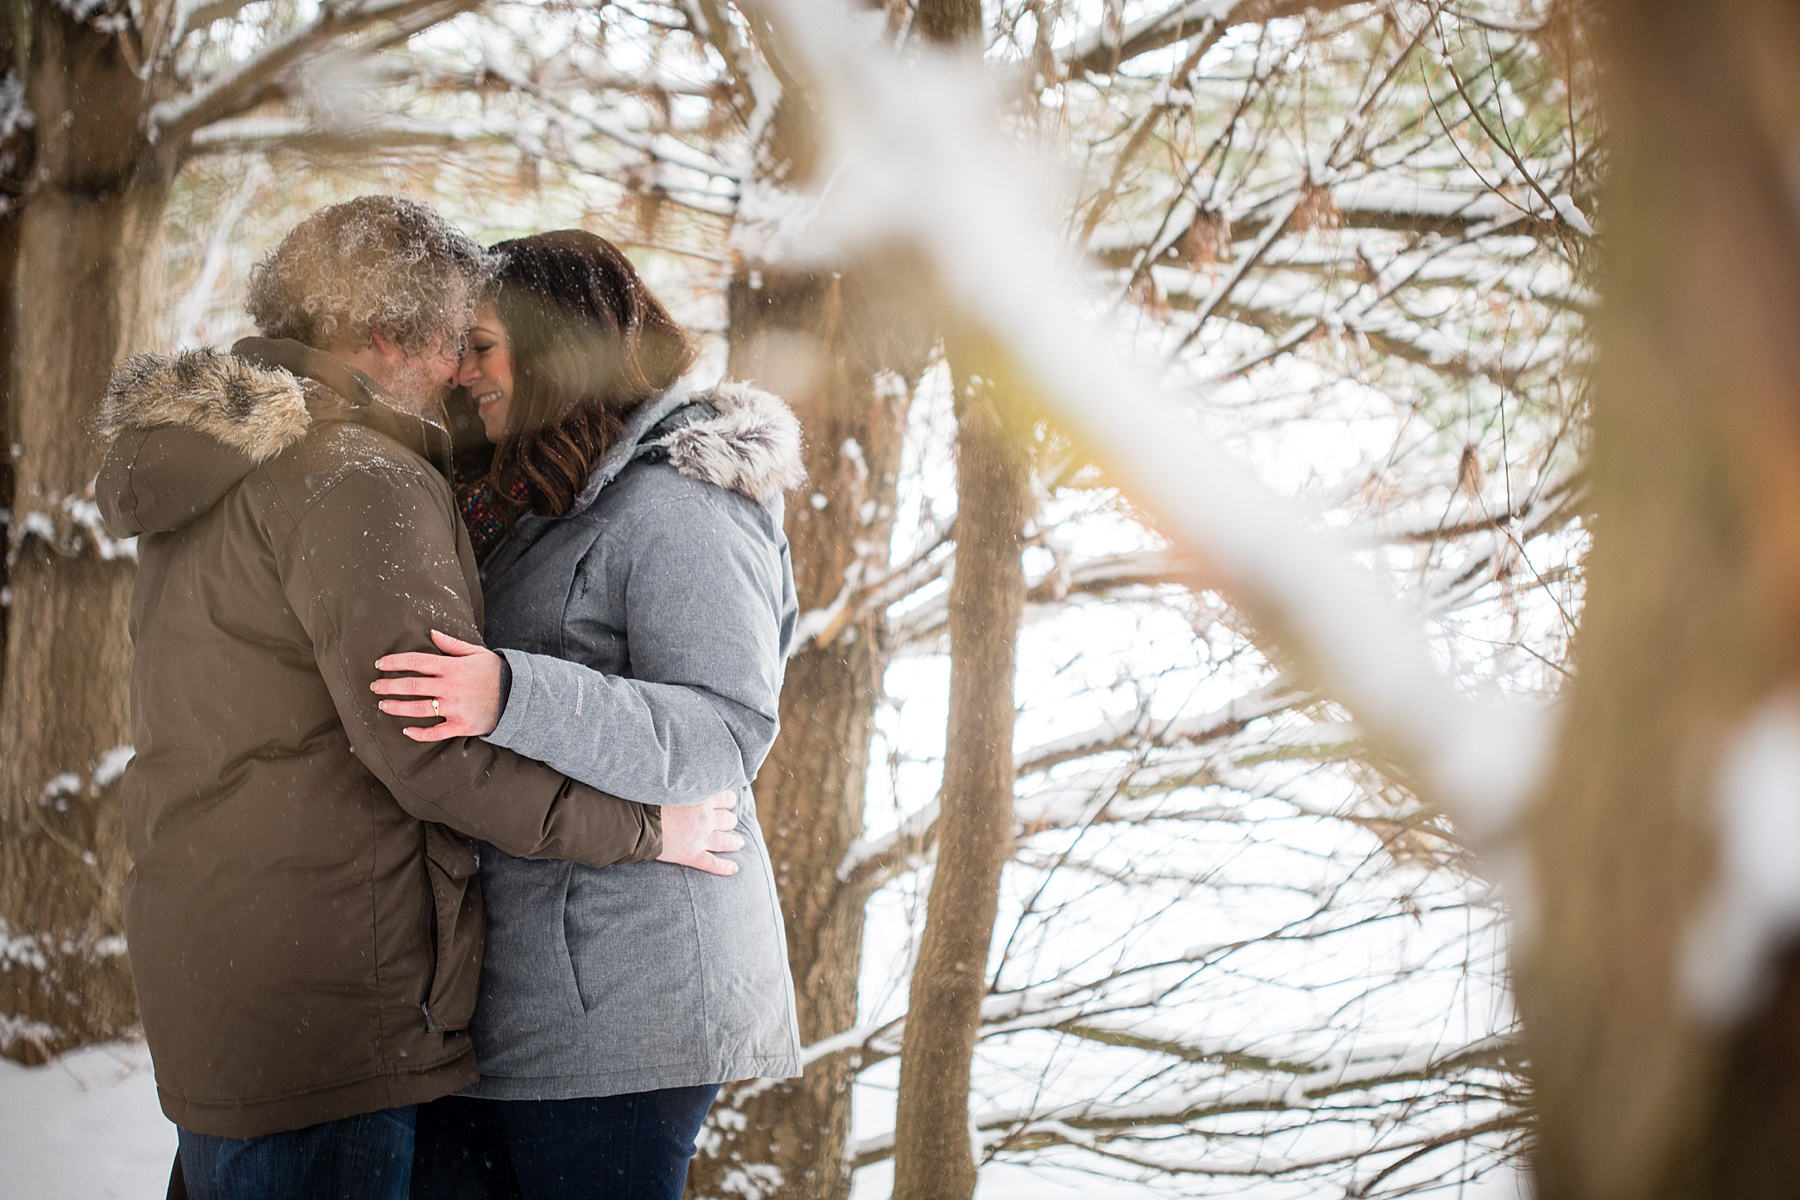 Brandon_Shafer_Photography_Winter_Engagement011.JPG